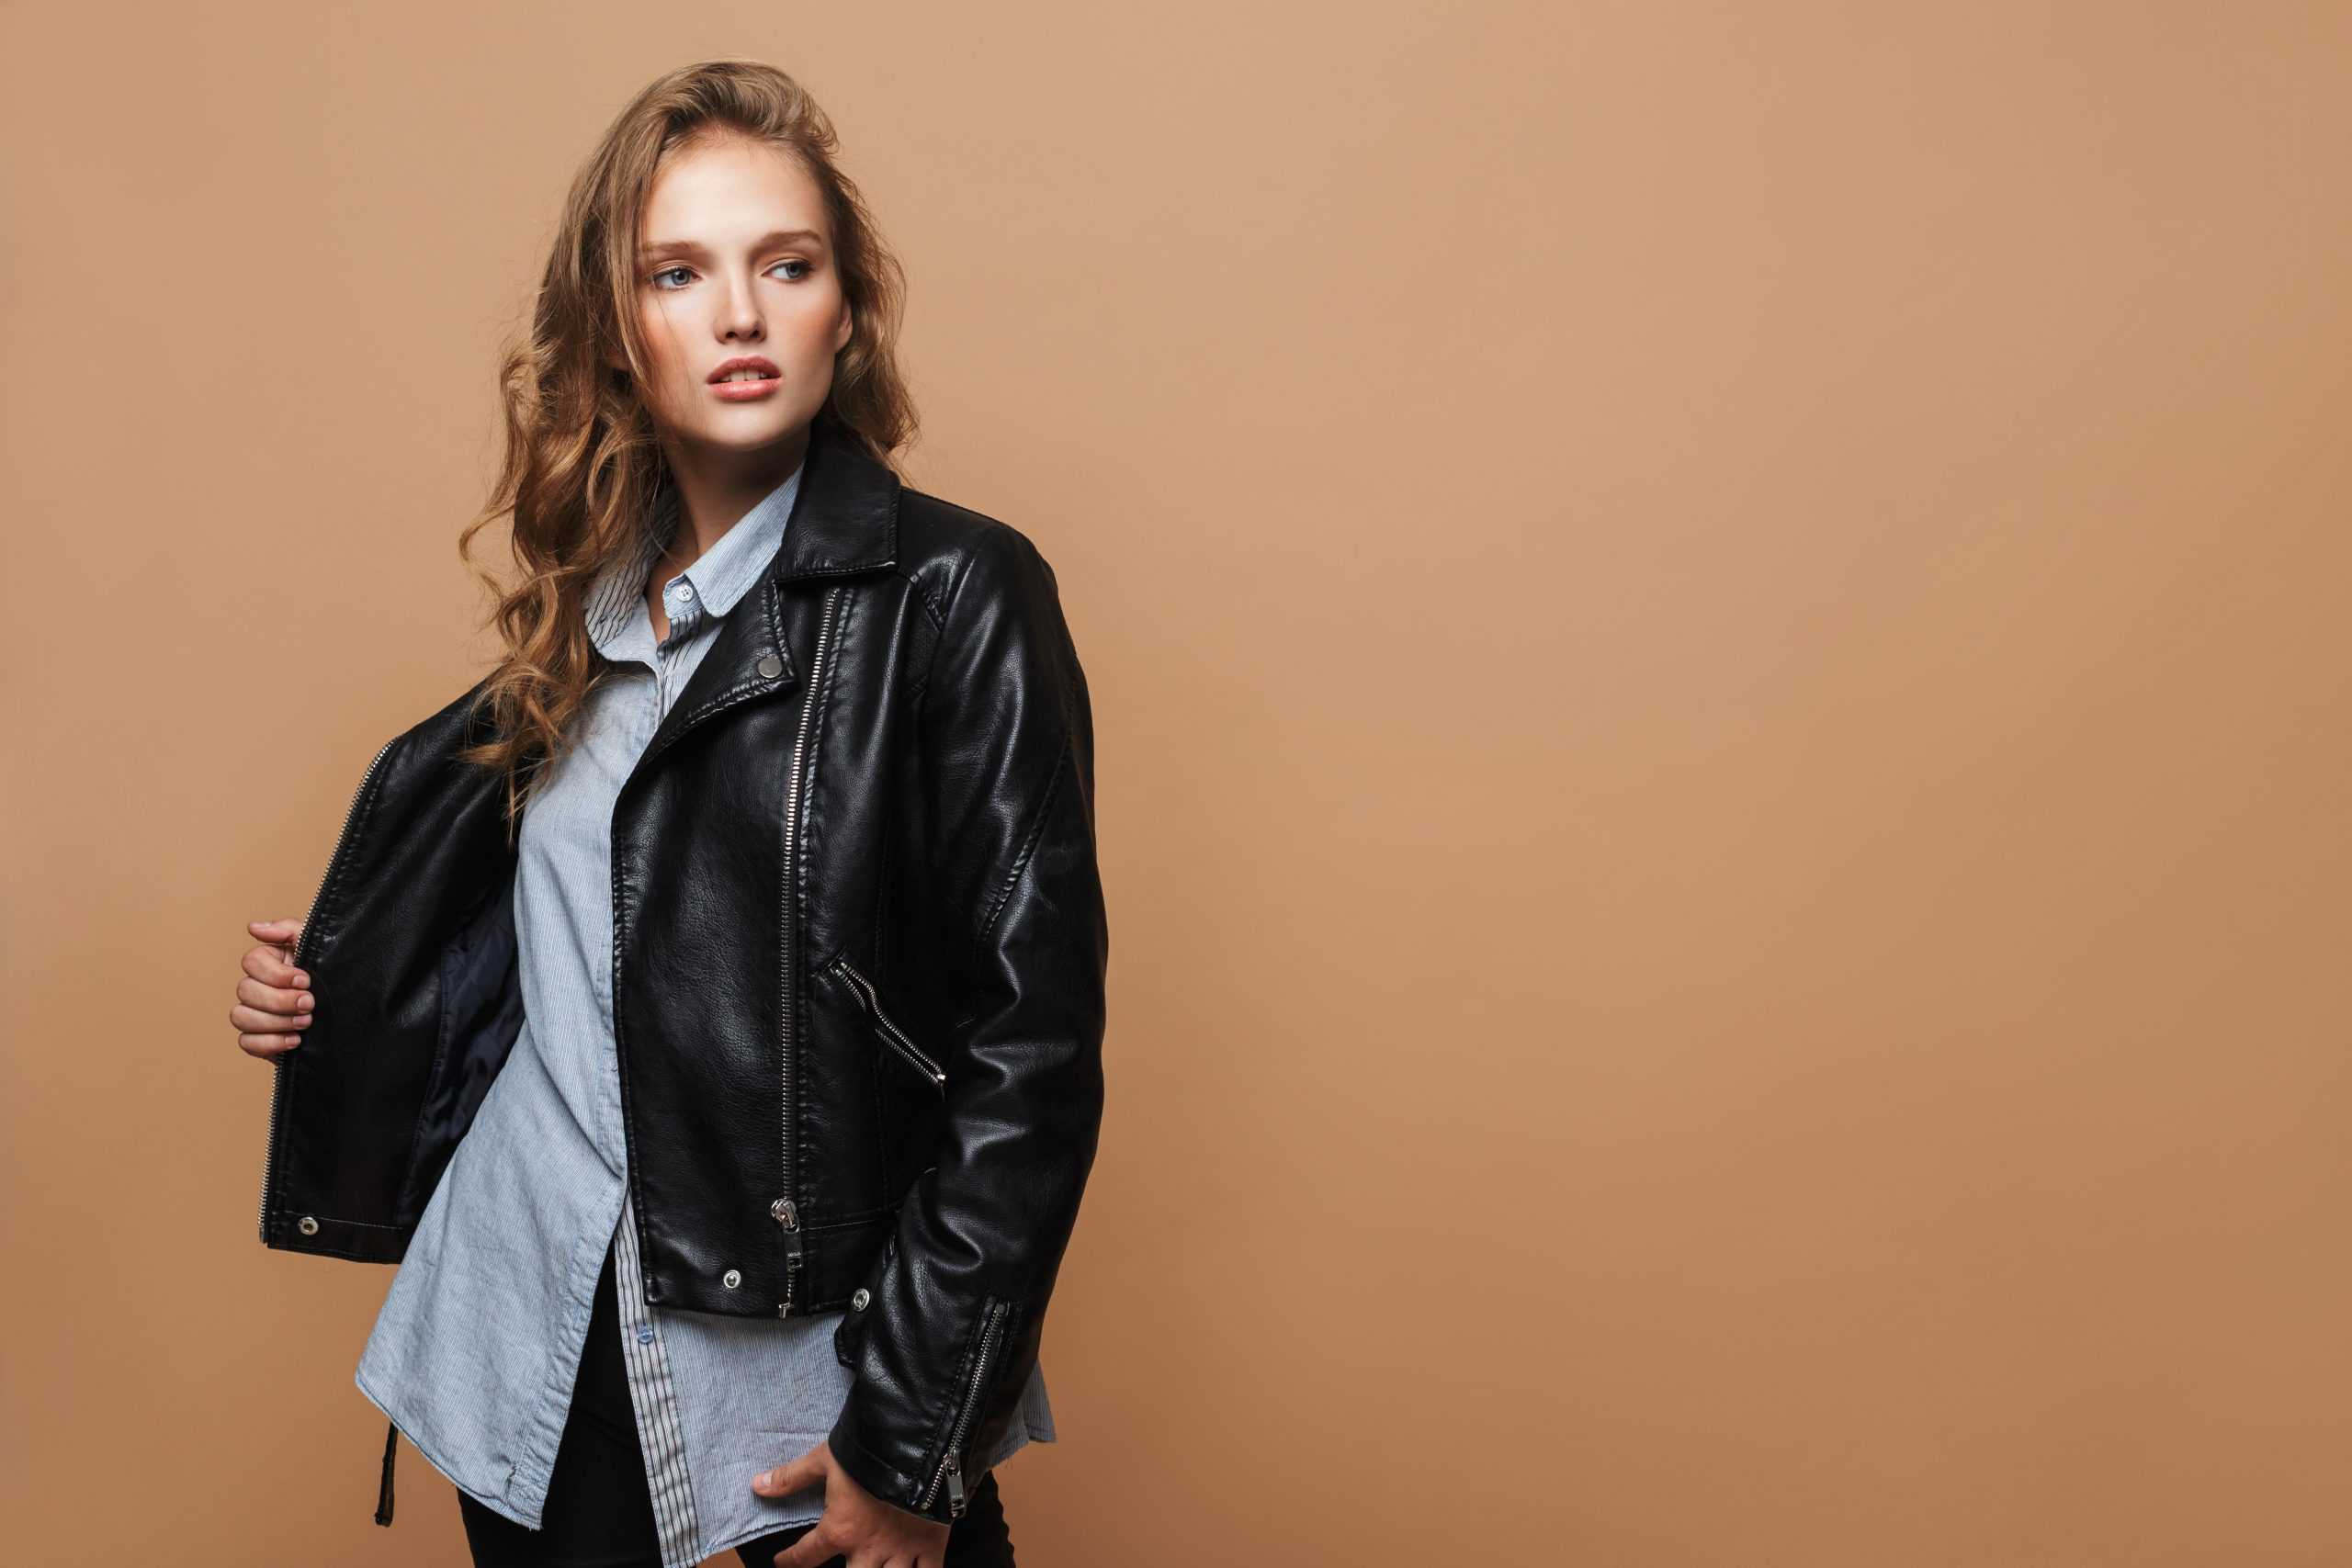 SS'21: Luxe is the New Leather